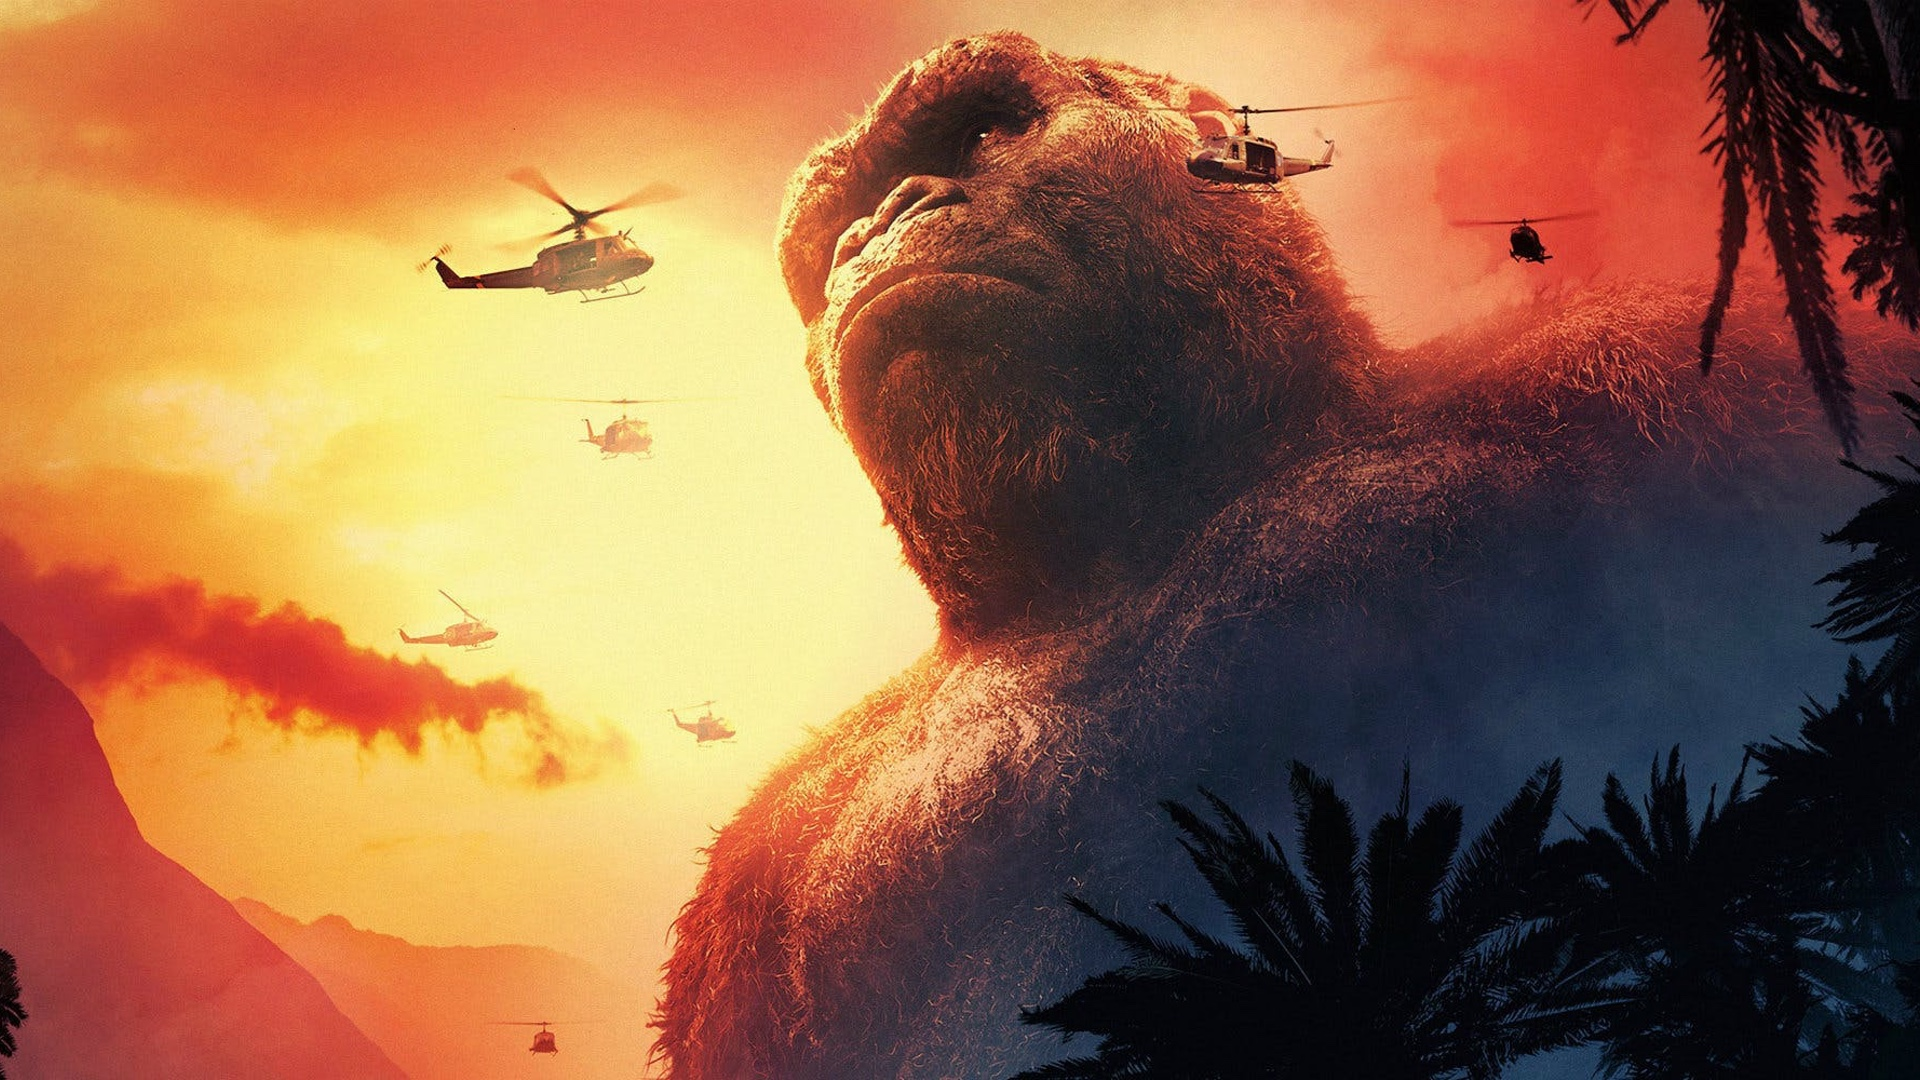 godzilla-vs-kong-director-says-the-movie-will-be-a-massive-monster-brawl-movie-social.jpg